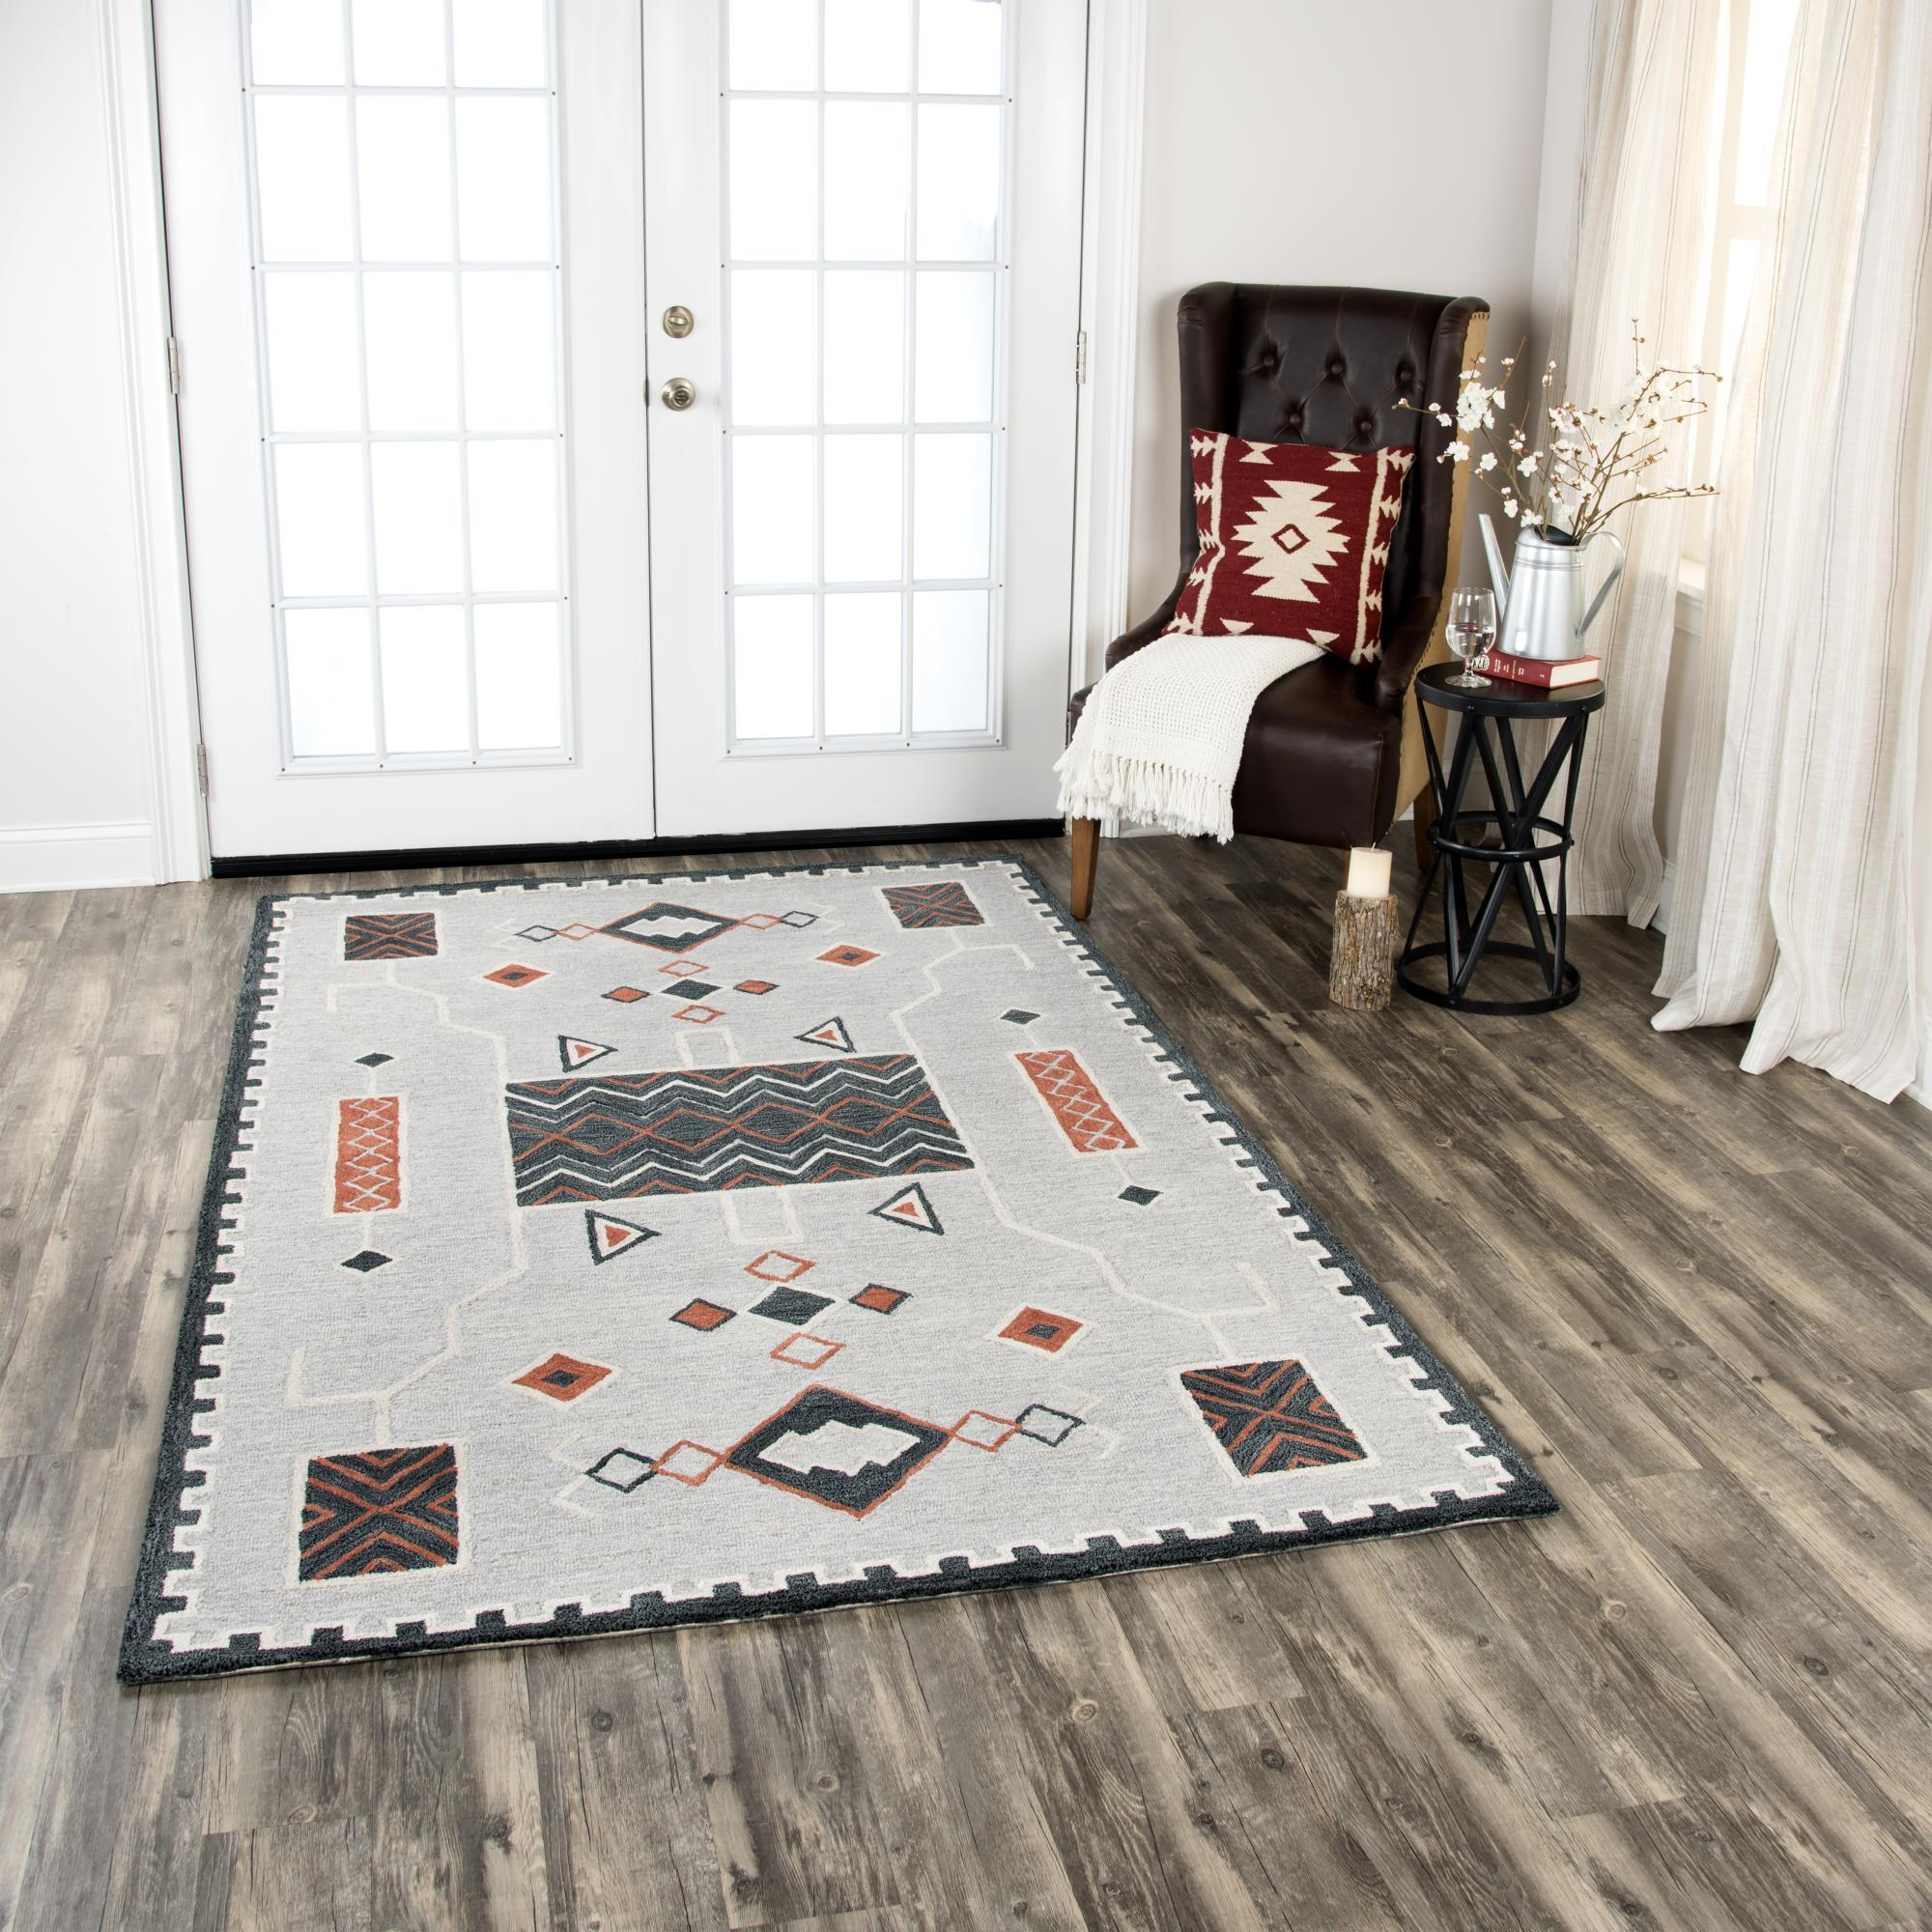 Rizzy Home Area Rugs Mesa Area Rugs MZ158B Beige Wool Southwest Design in 3 Sizes